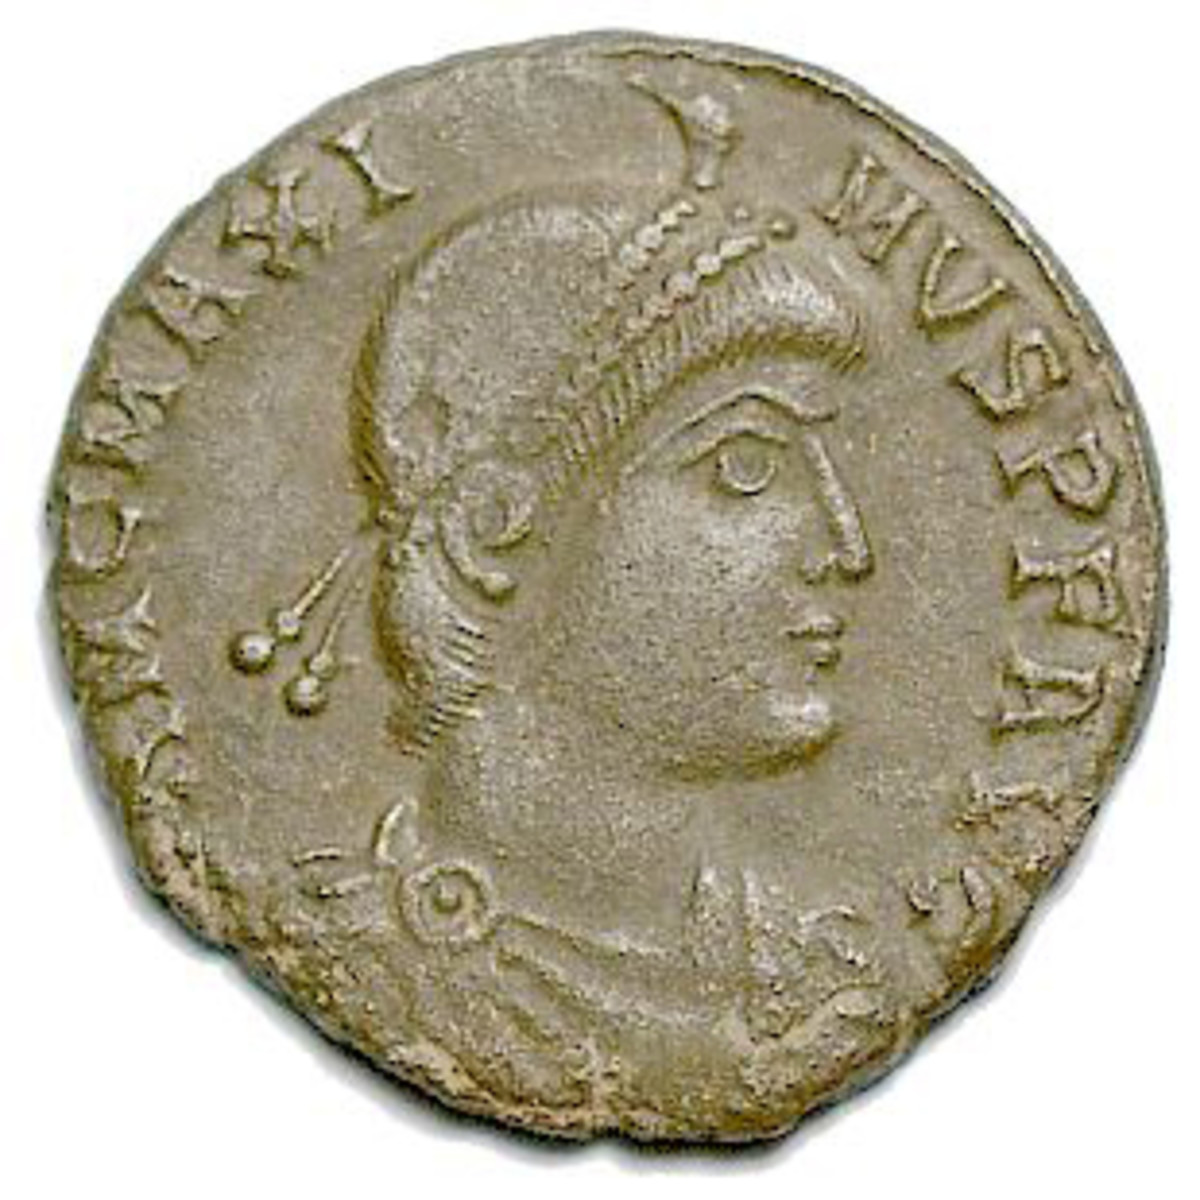 Imperial Roman coins like this one of Emperor Maximus could be included in a renewed memorandum.